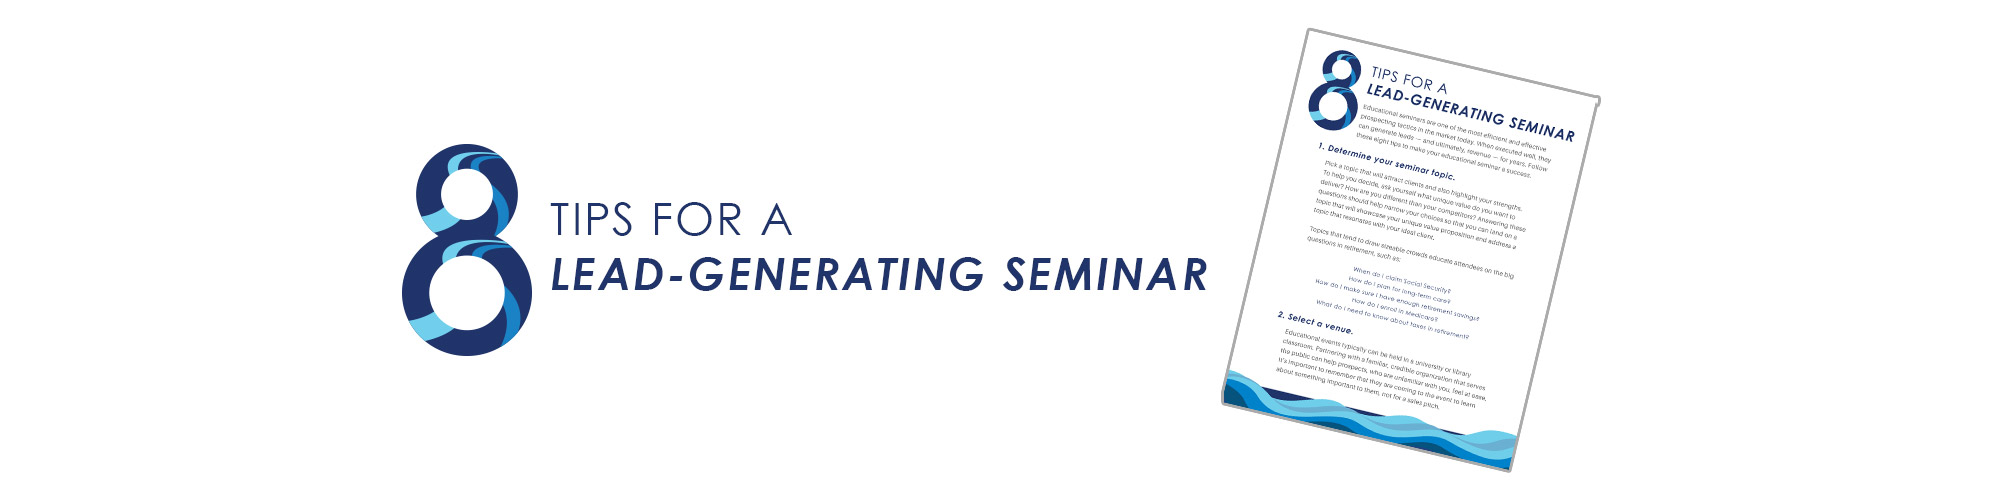 8 Tips for a Lead-Generating Seminar